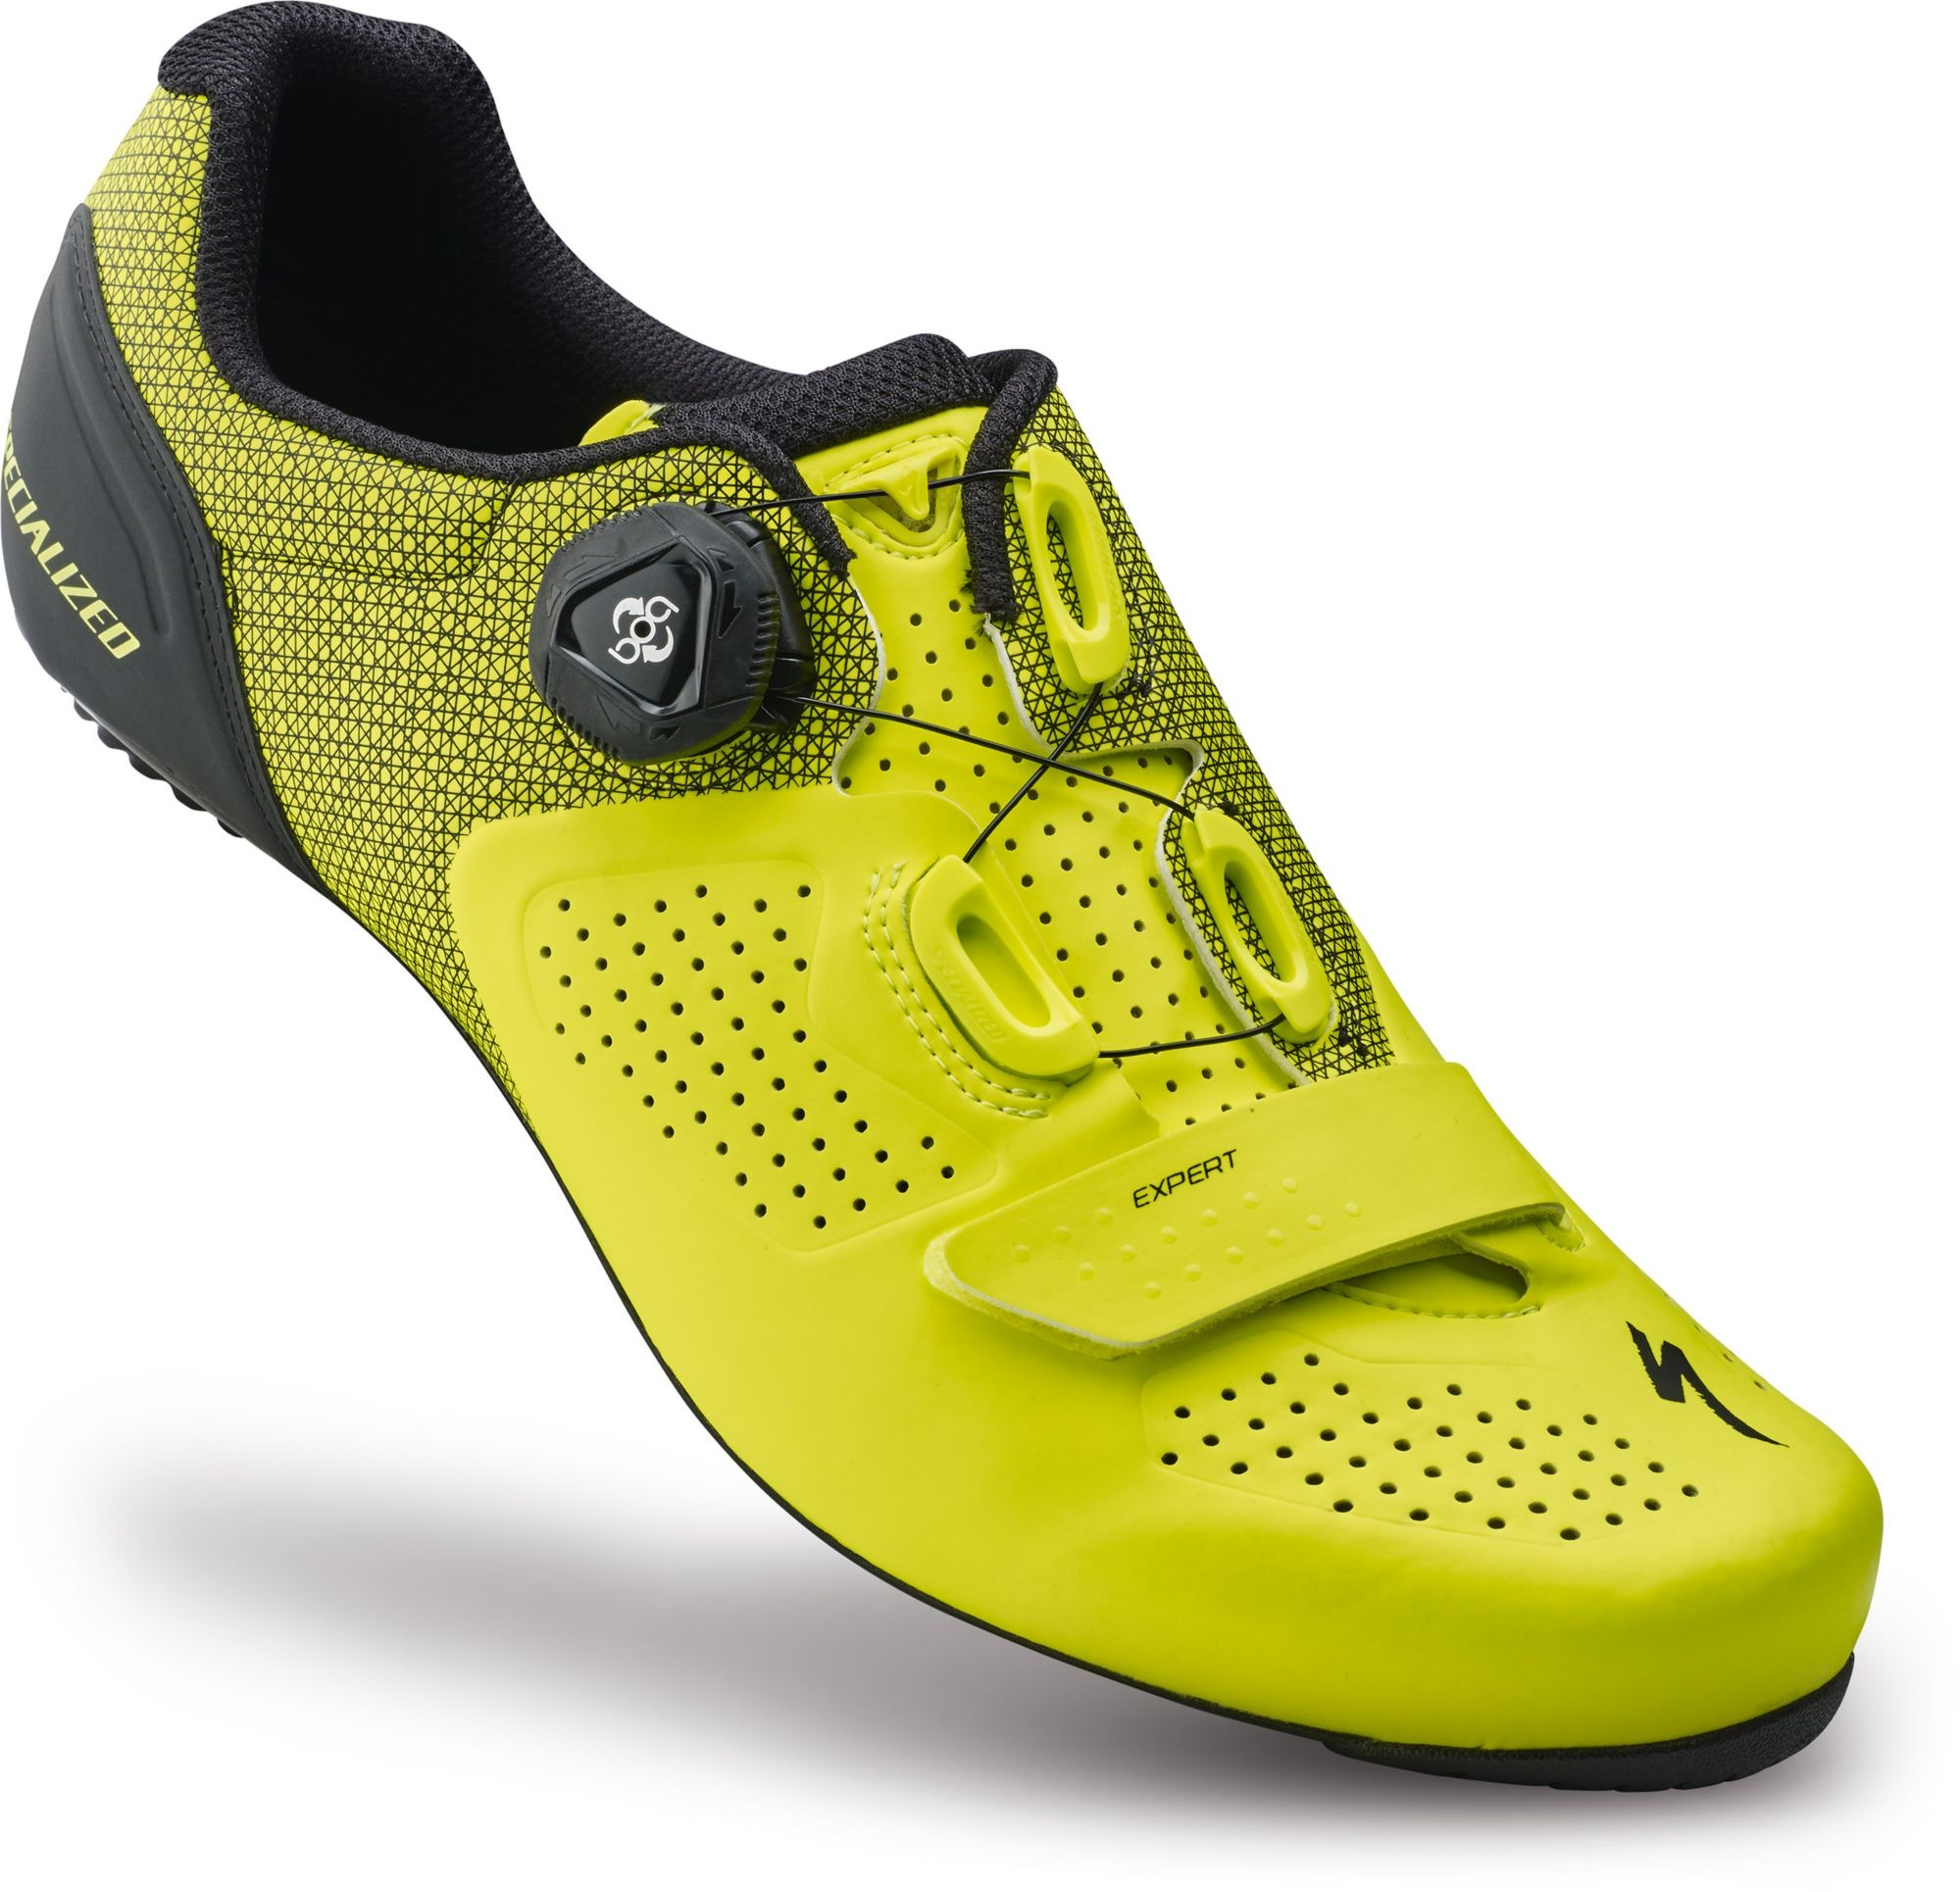 Specialized Mens Cycling Shoes